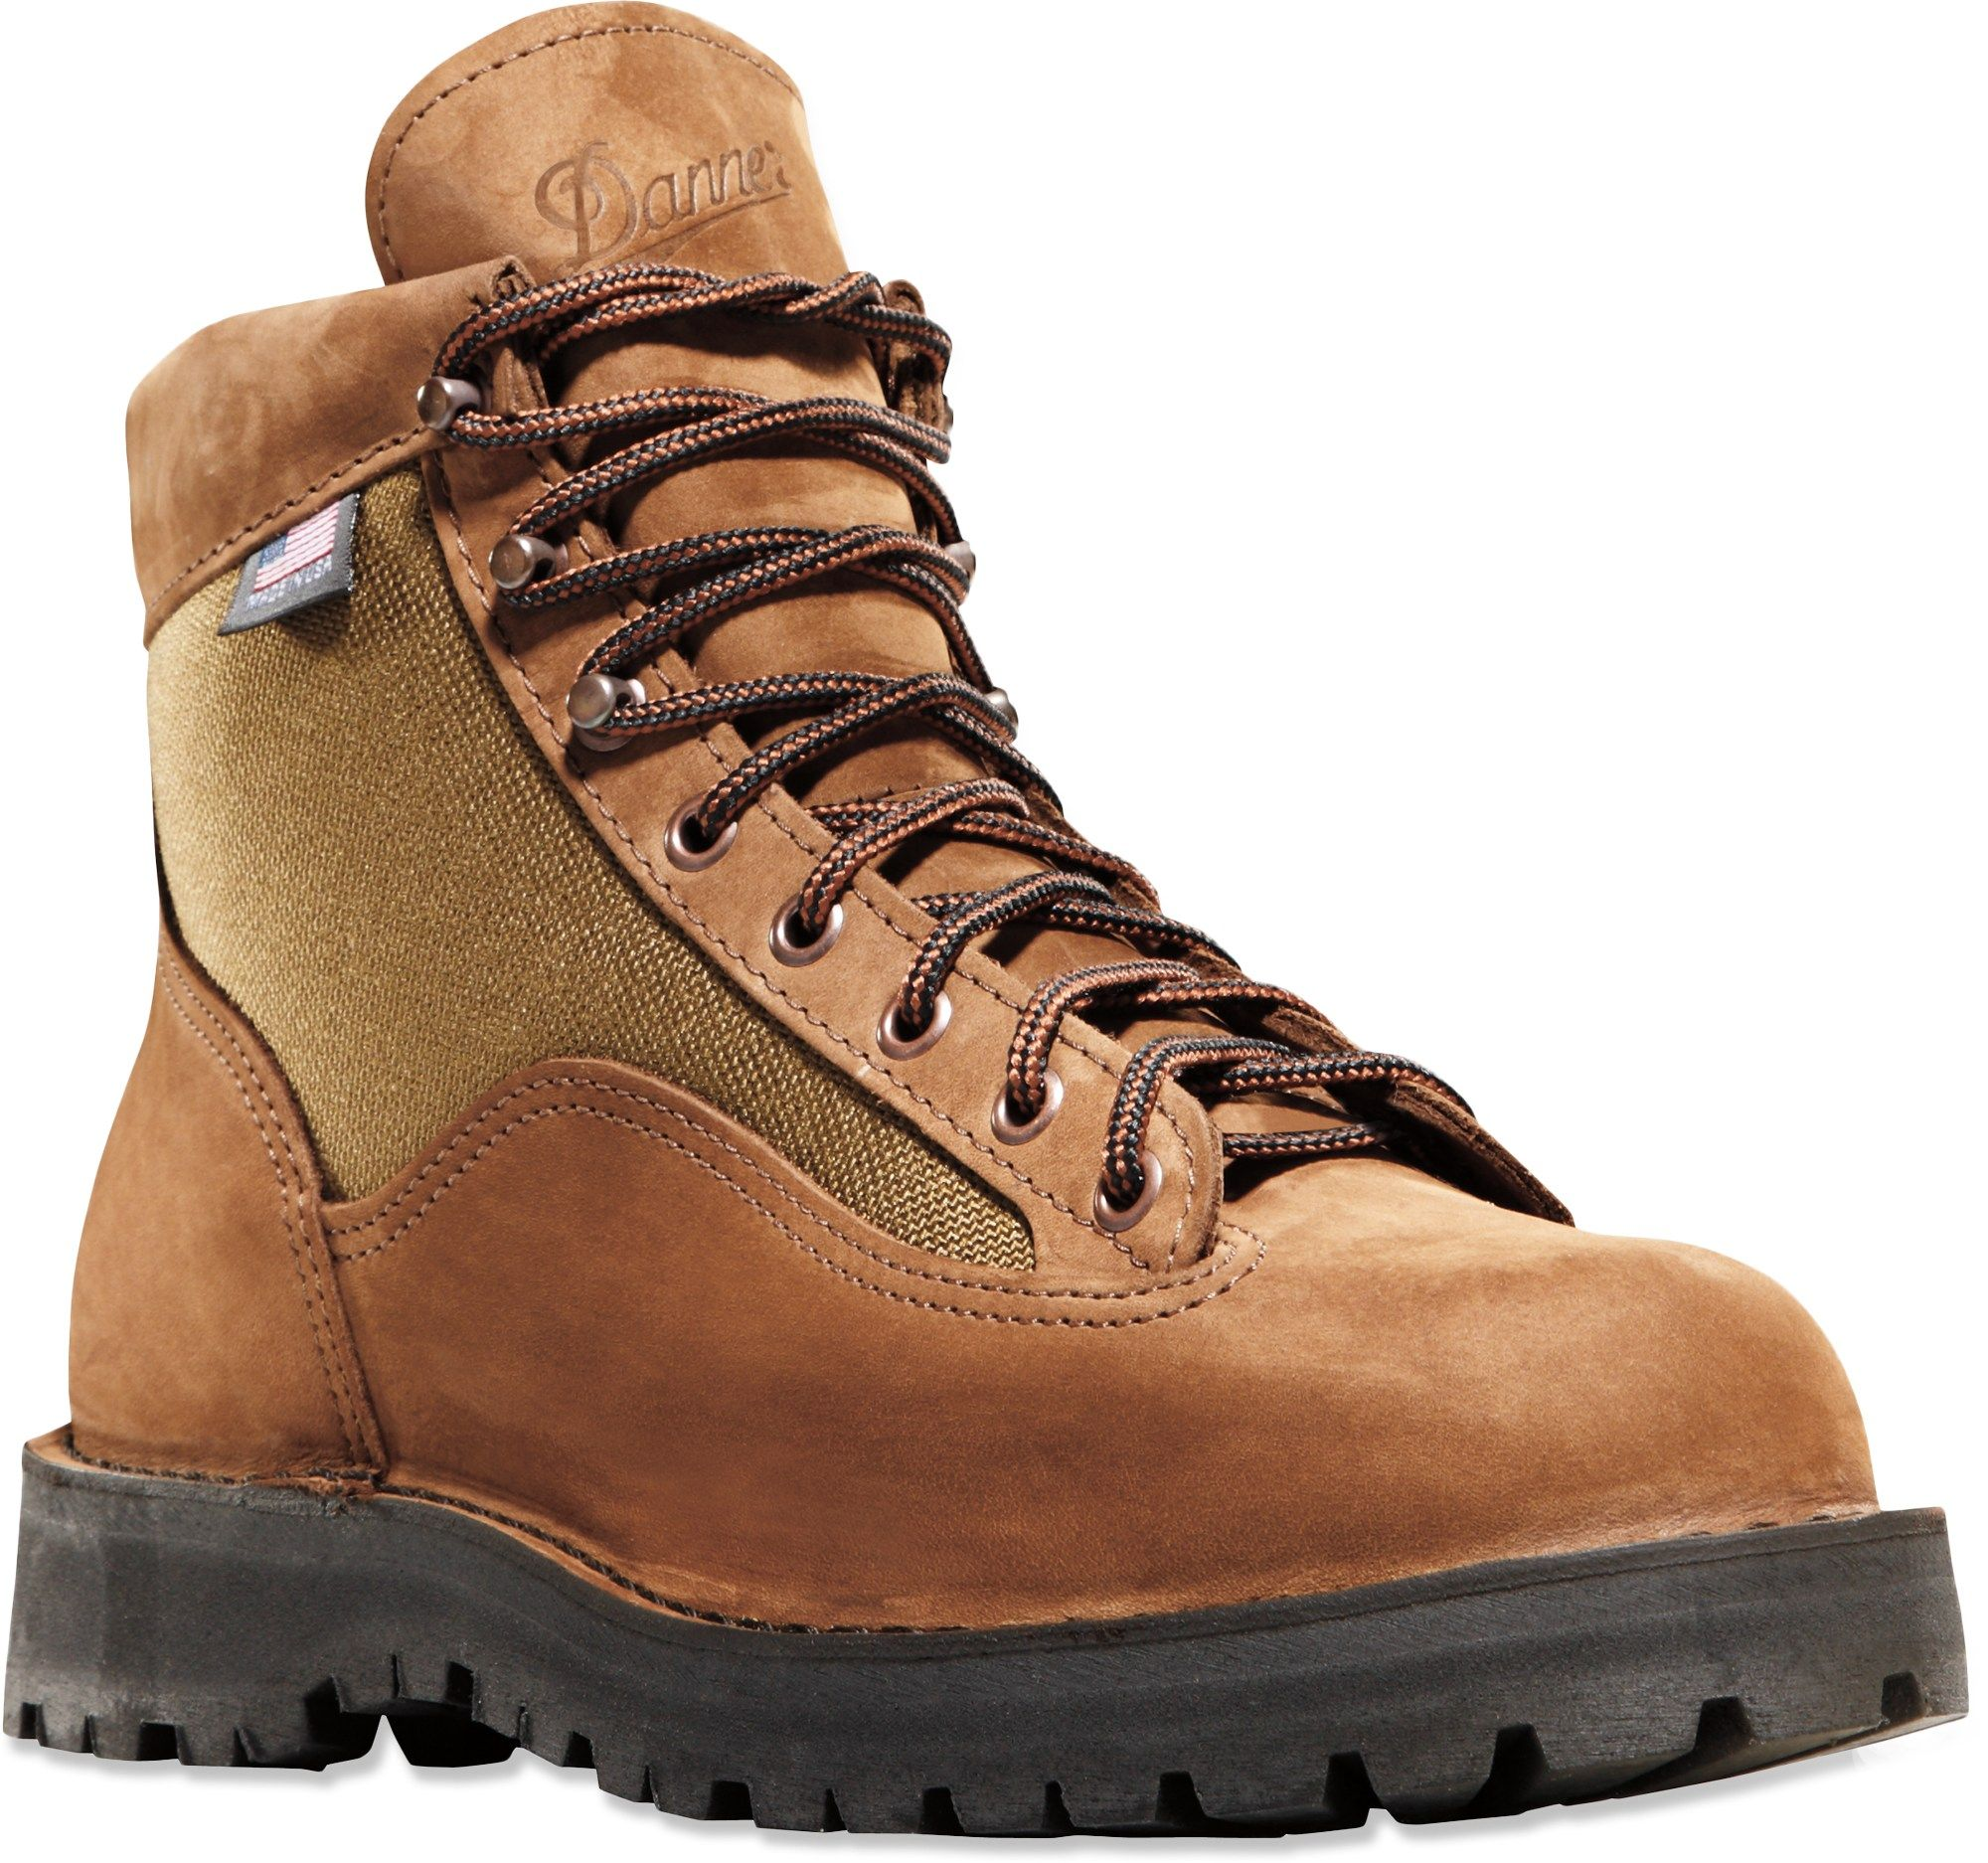 Danner Light II GTX Hiking Boots - Men's